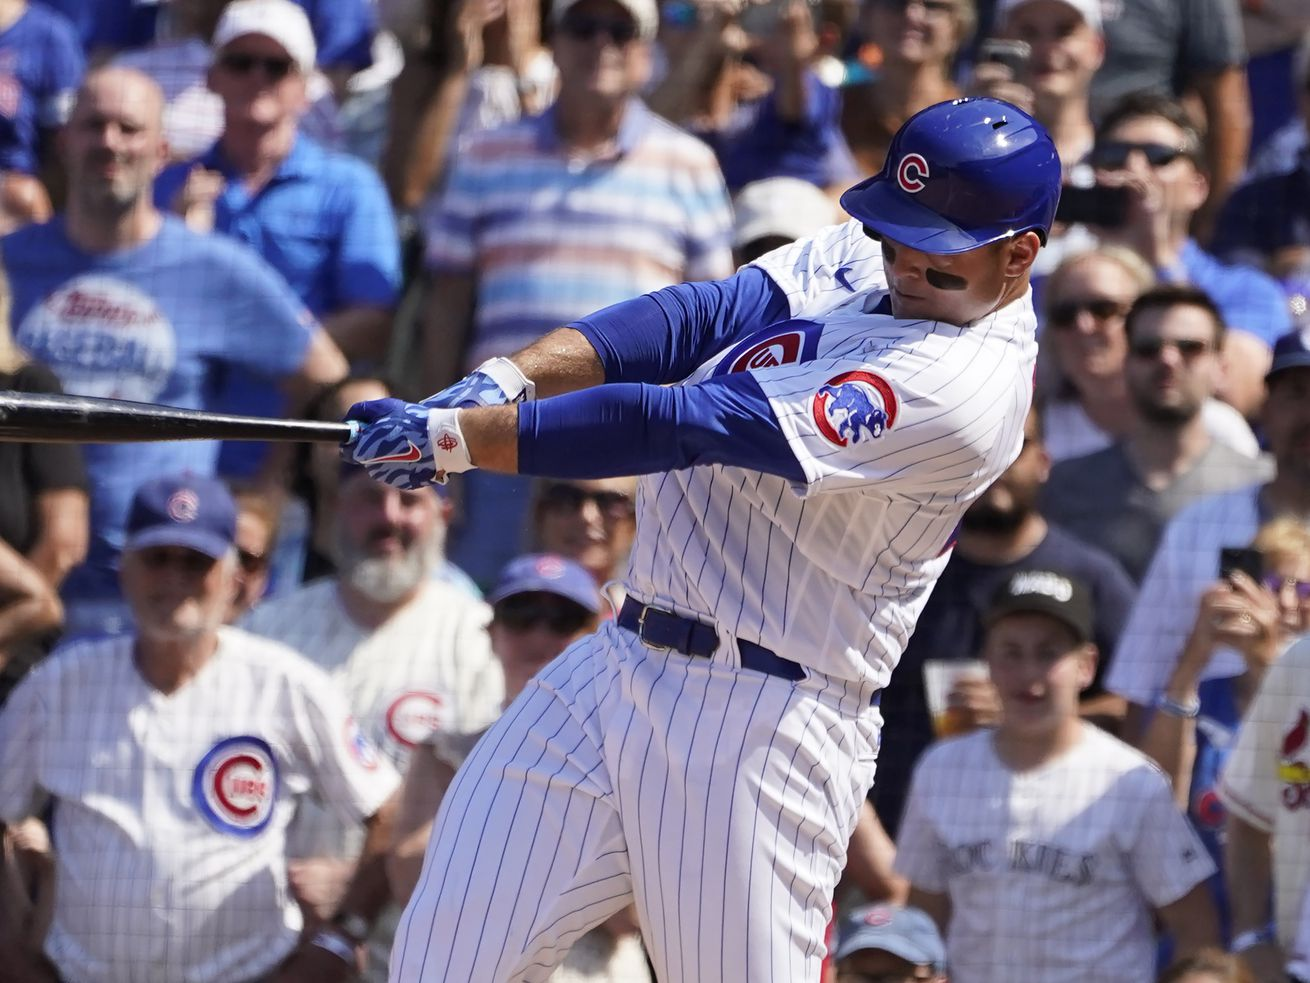 The Cubs' Anthony Rizzo hits a home run off Cardinals starting pitcher Daniel Ponce de Leon on the 14th pitch of his at-bat.